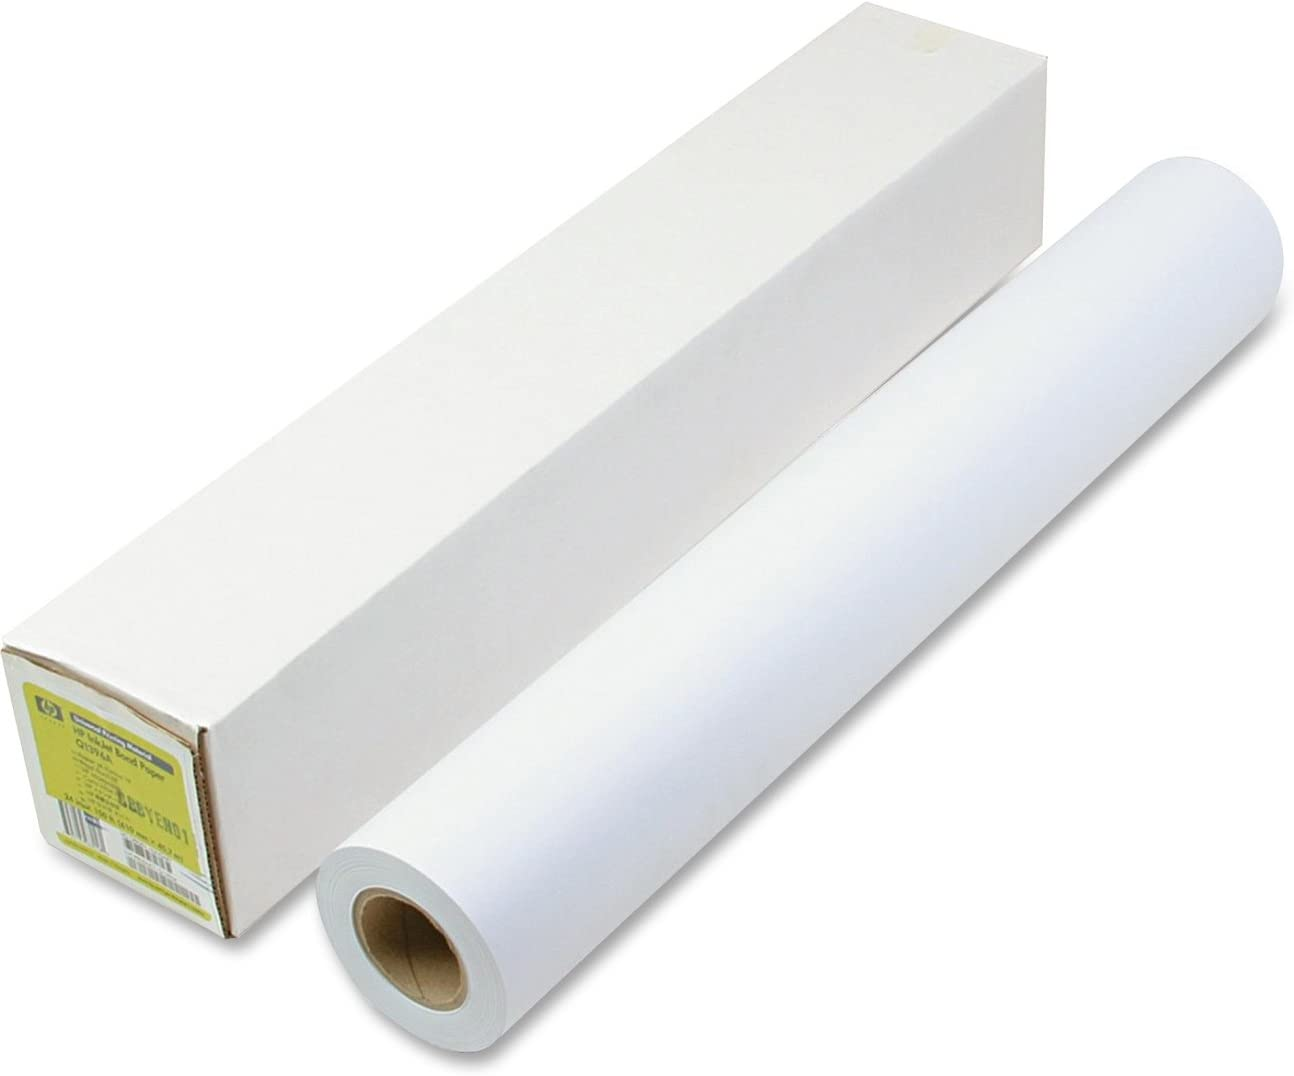 HEWQ1404B - HP Universal Coated Paper